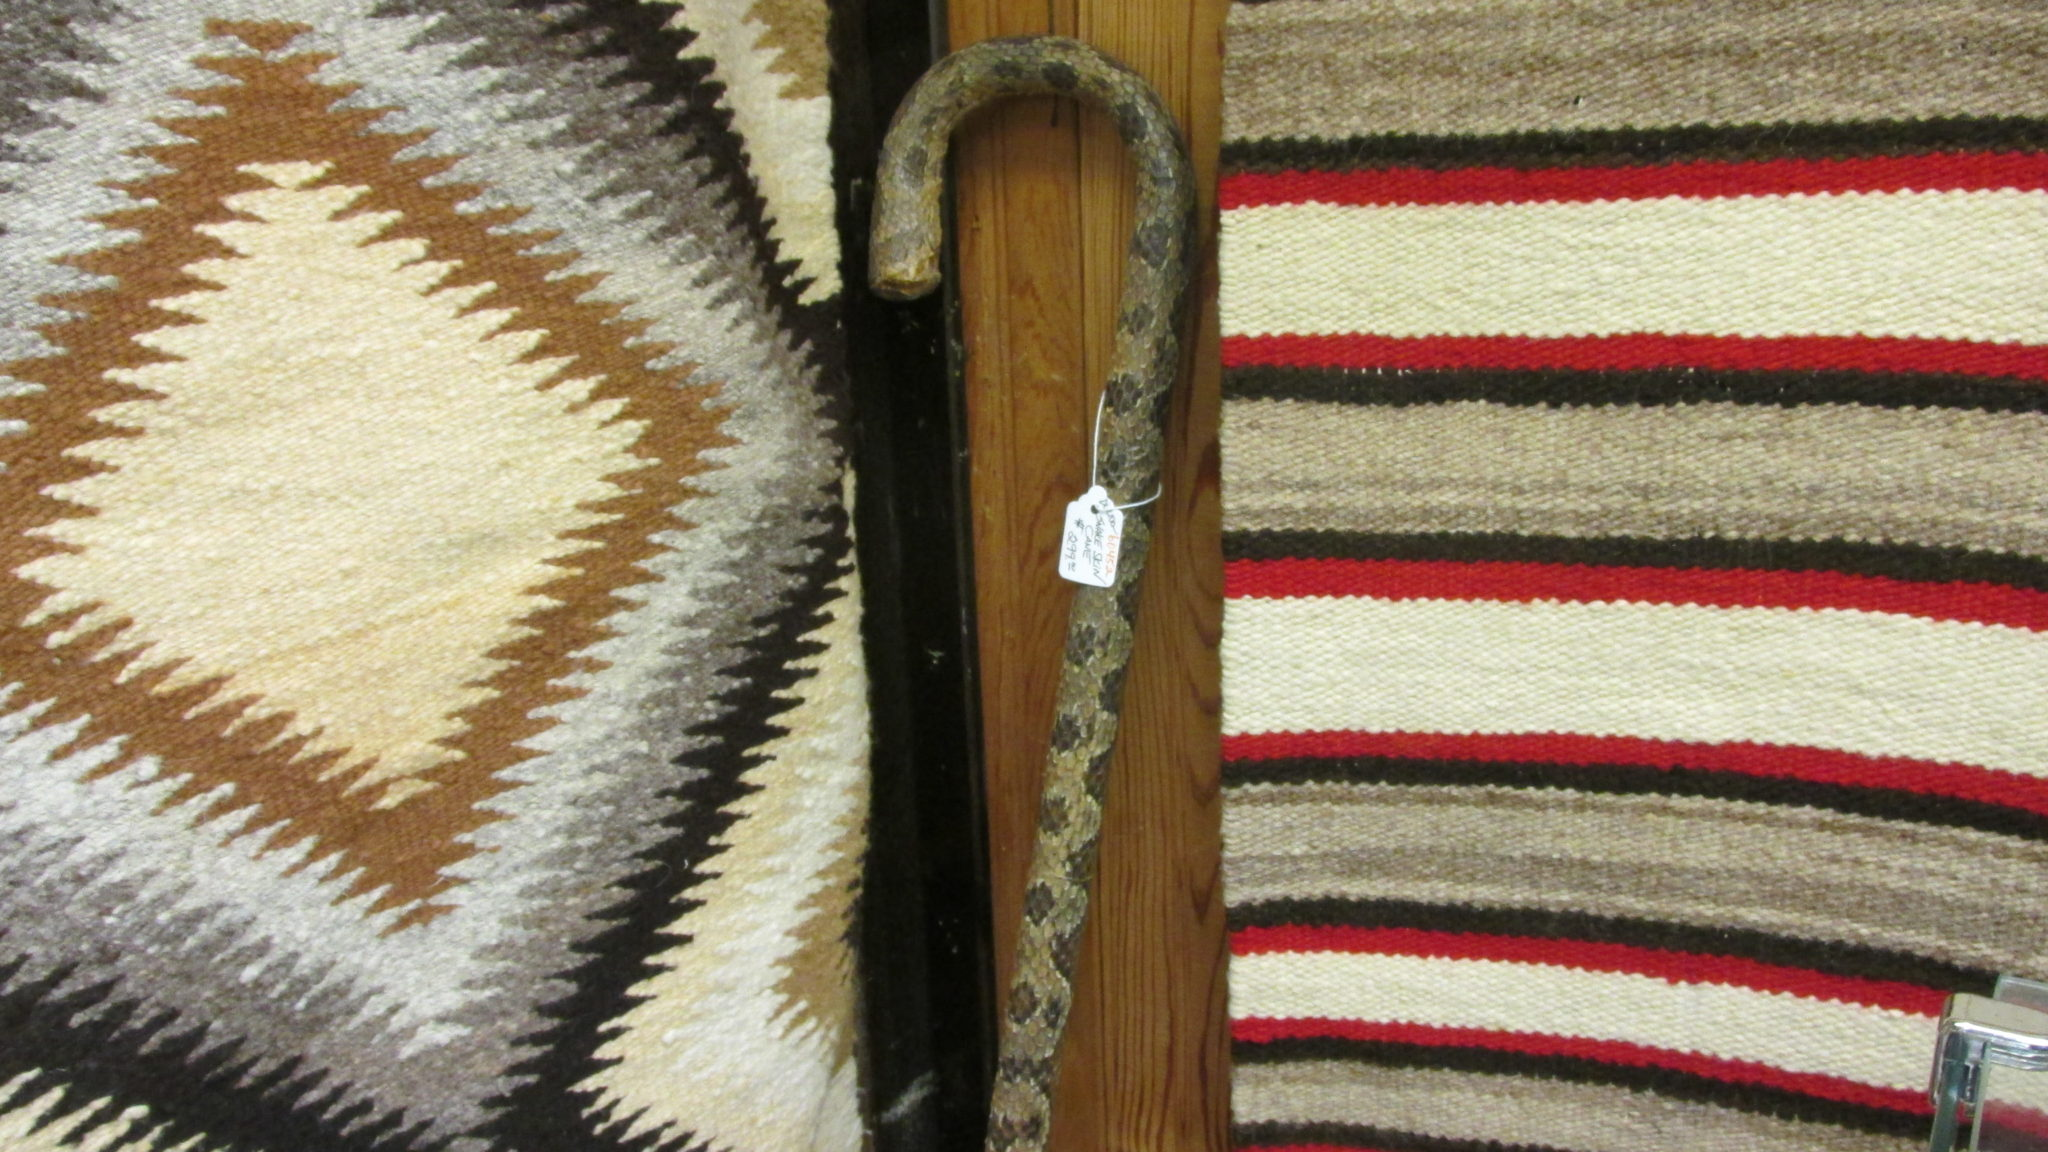 Snake skin cane next to the Navajo rug display